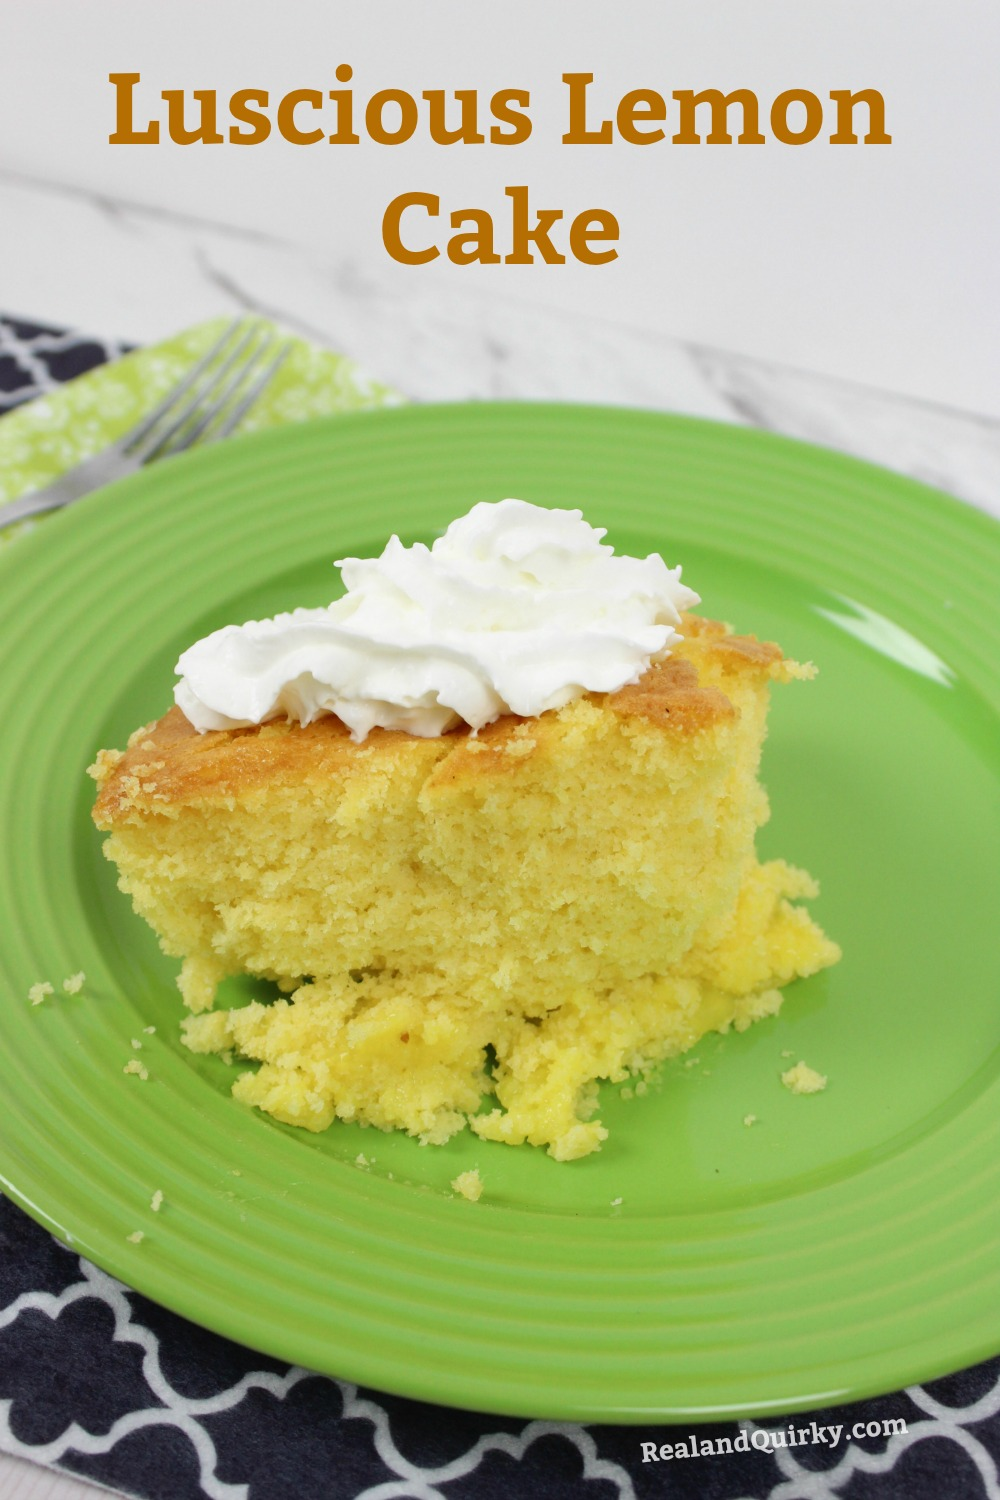 Luscious Lemon Cake Recipe from RealandQuirky.com